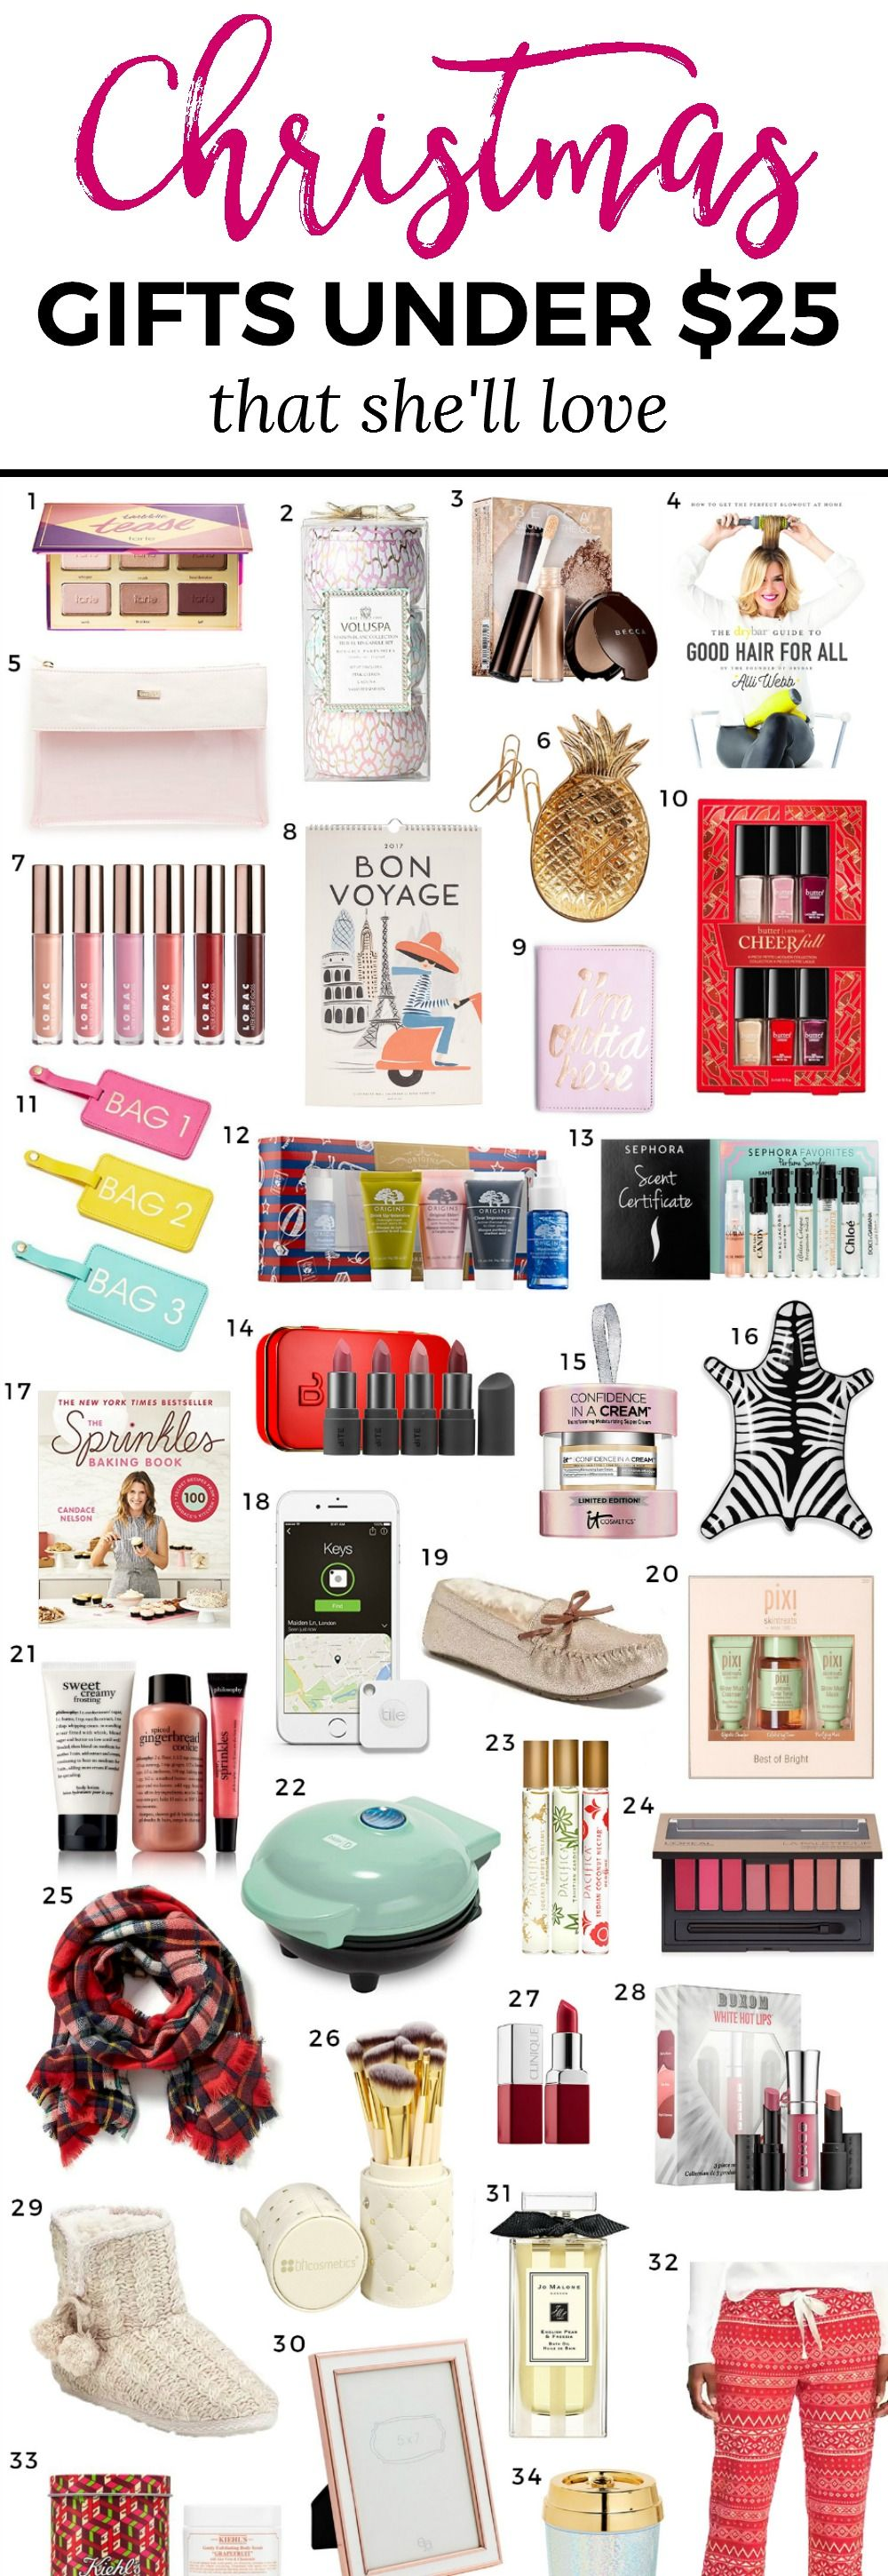 The ultimate Christmas gift guide including the best